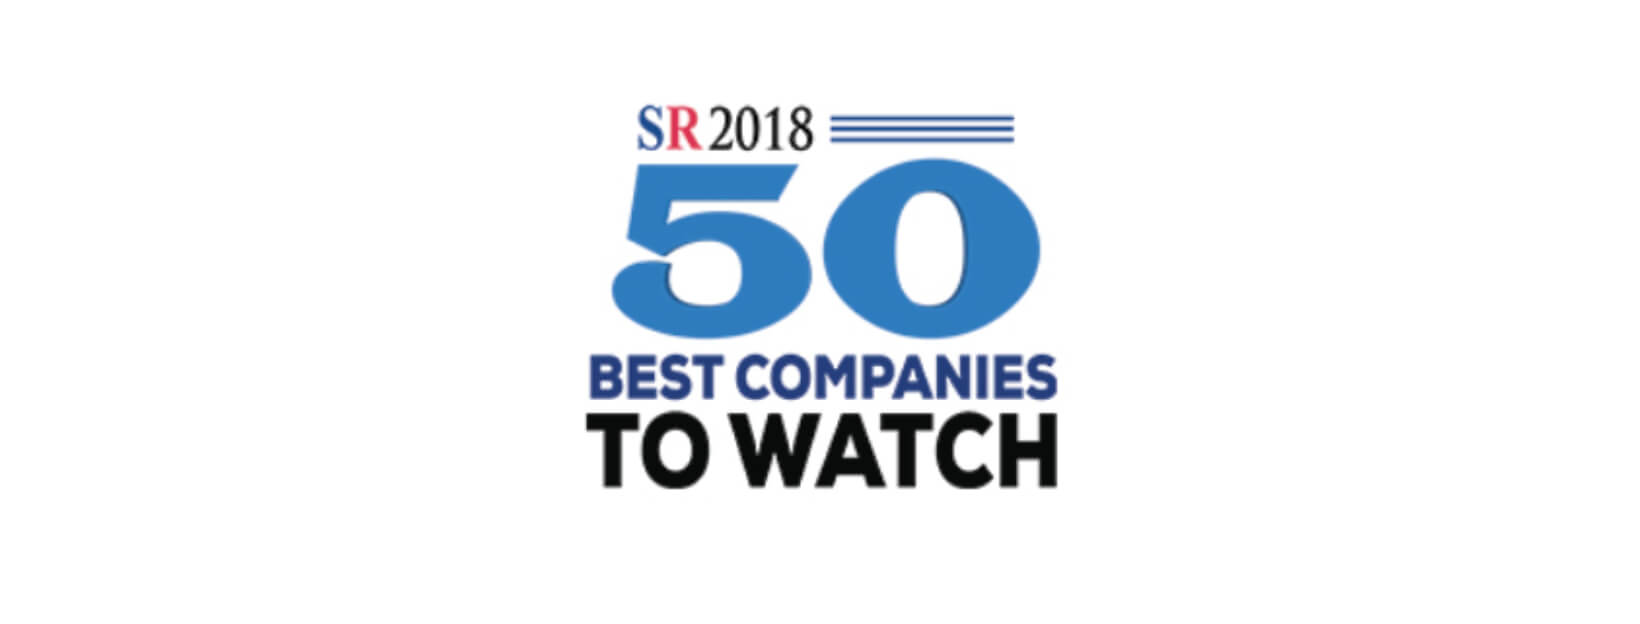 "EPS Global named among the Silicon Review's ""50 Best Companies to Watch"""